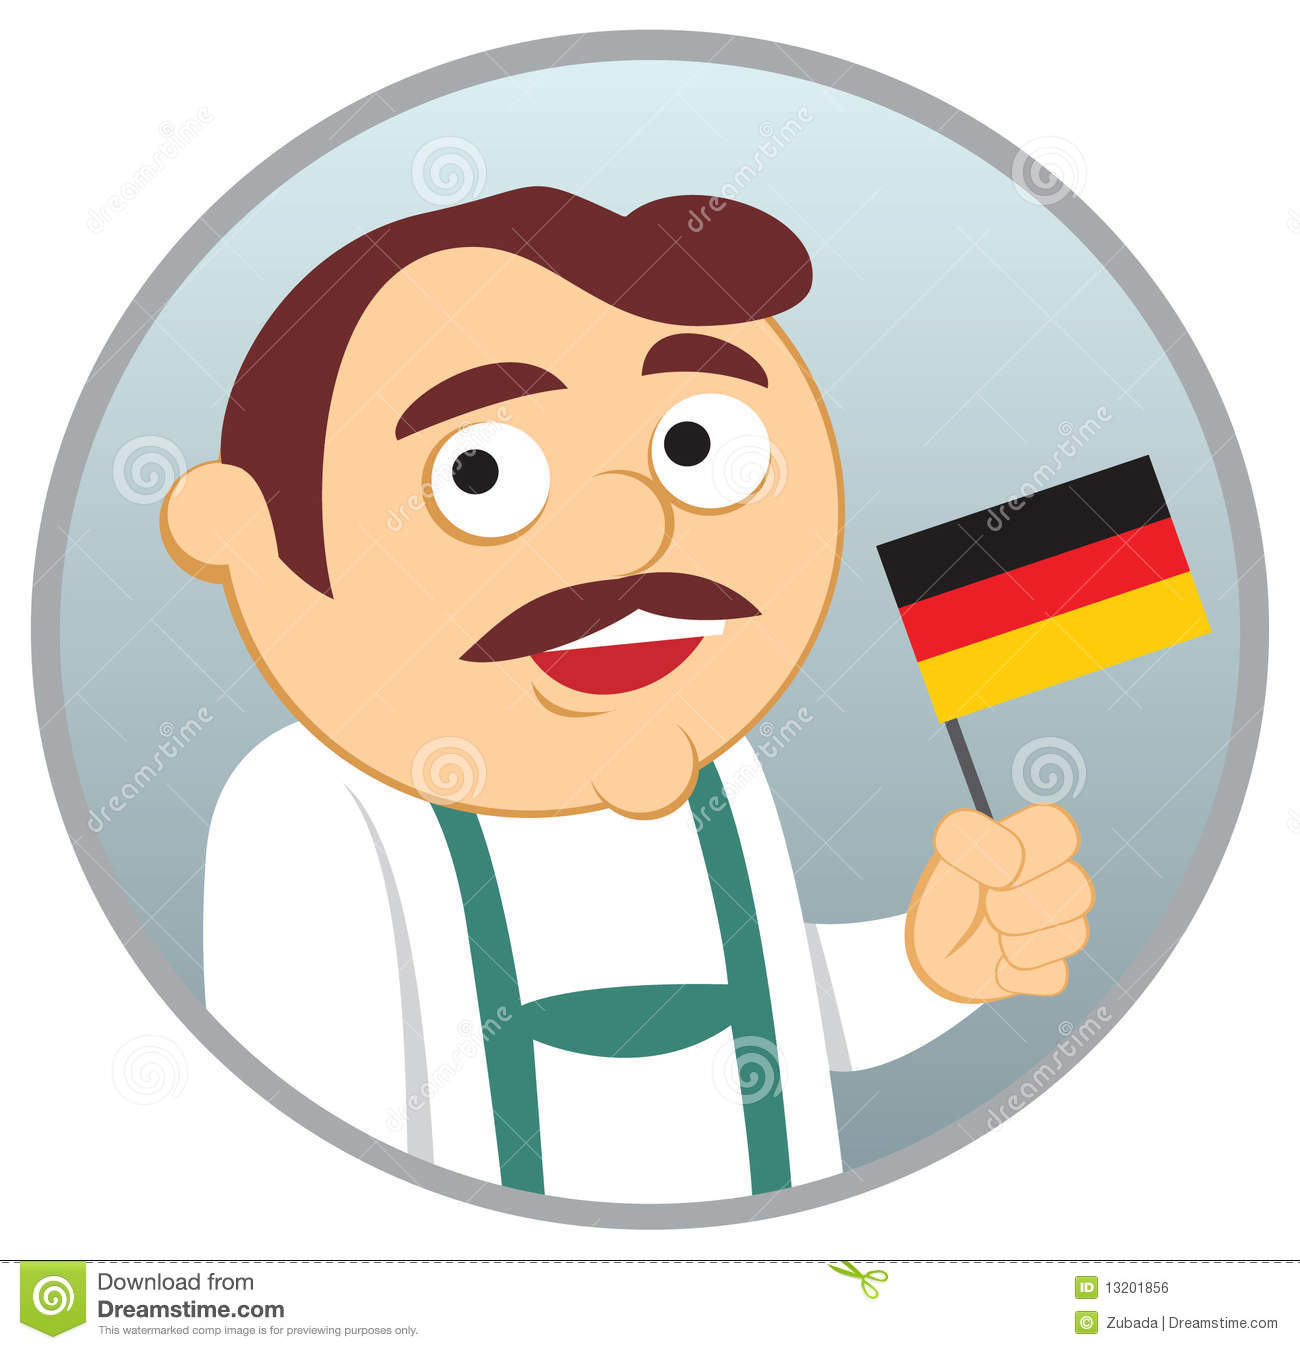 Royalty Free Stock Image: Man from Germany